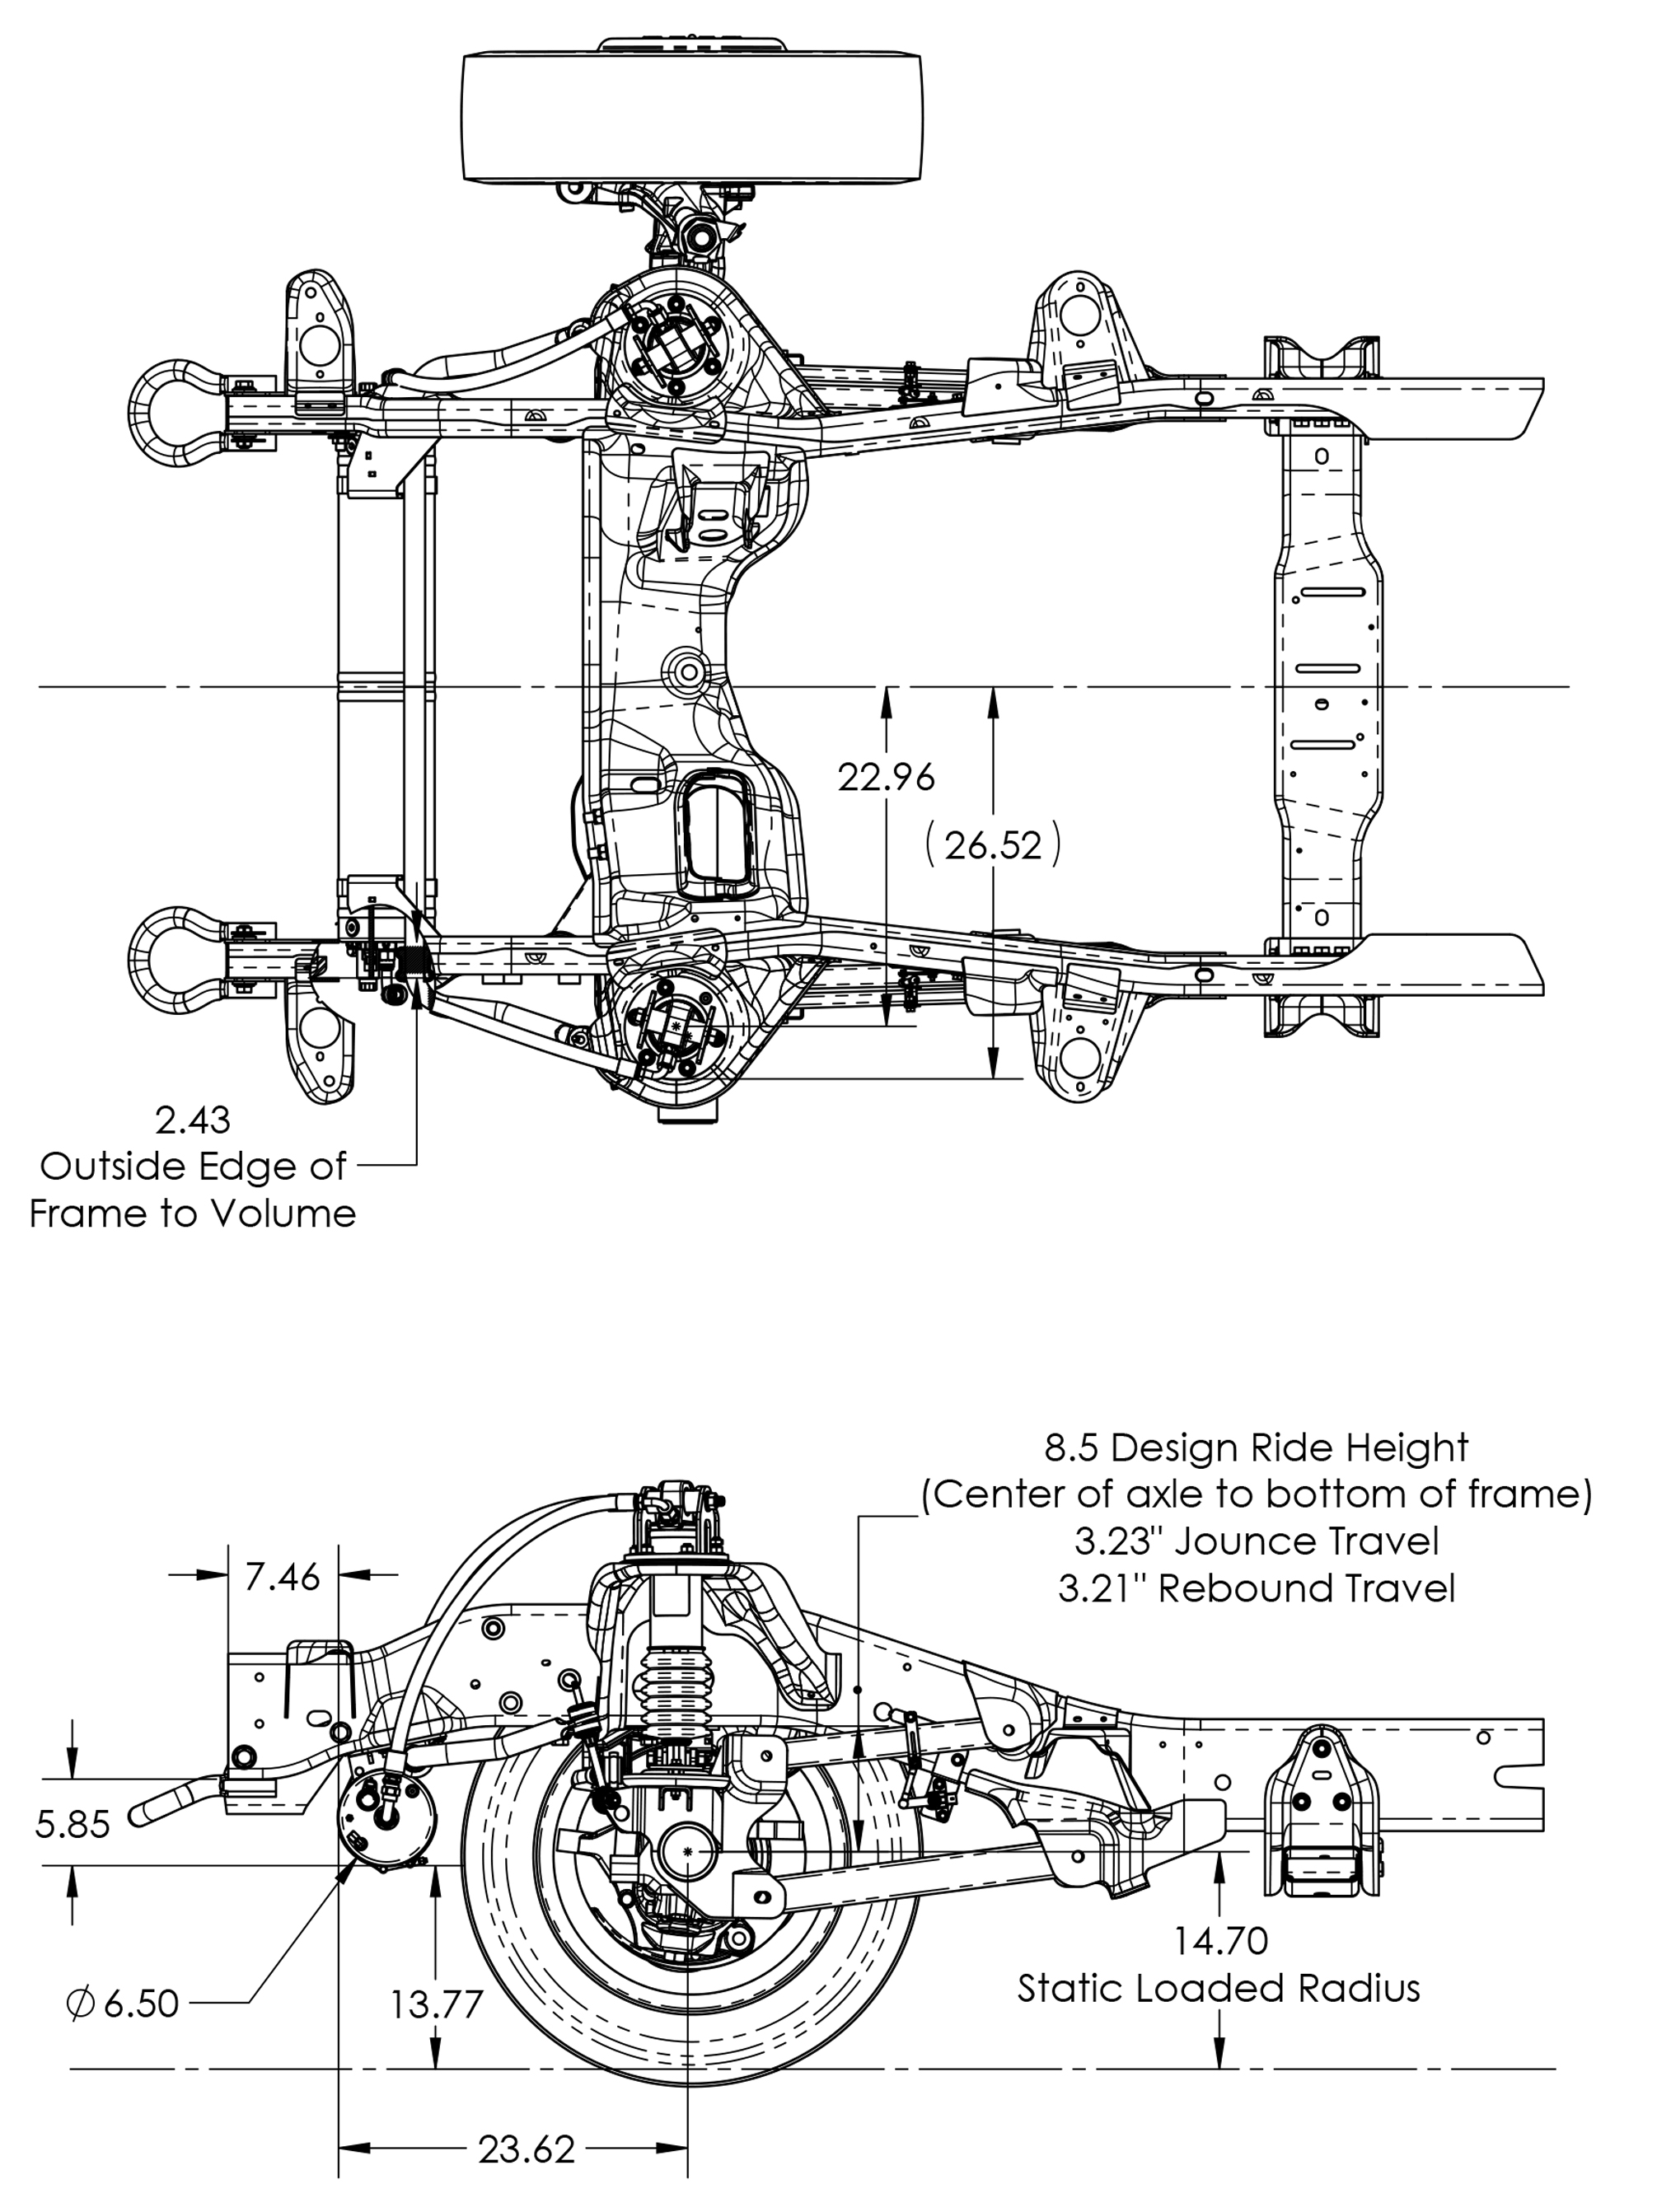 Ram Front Axle Suspension System For Ems